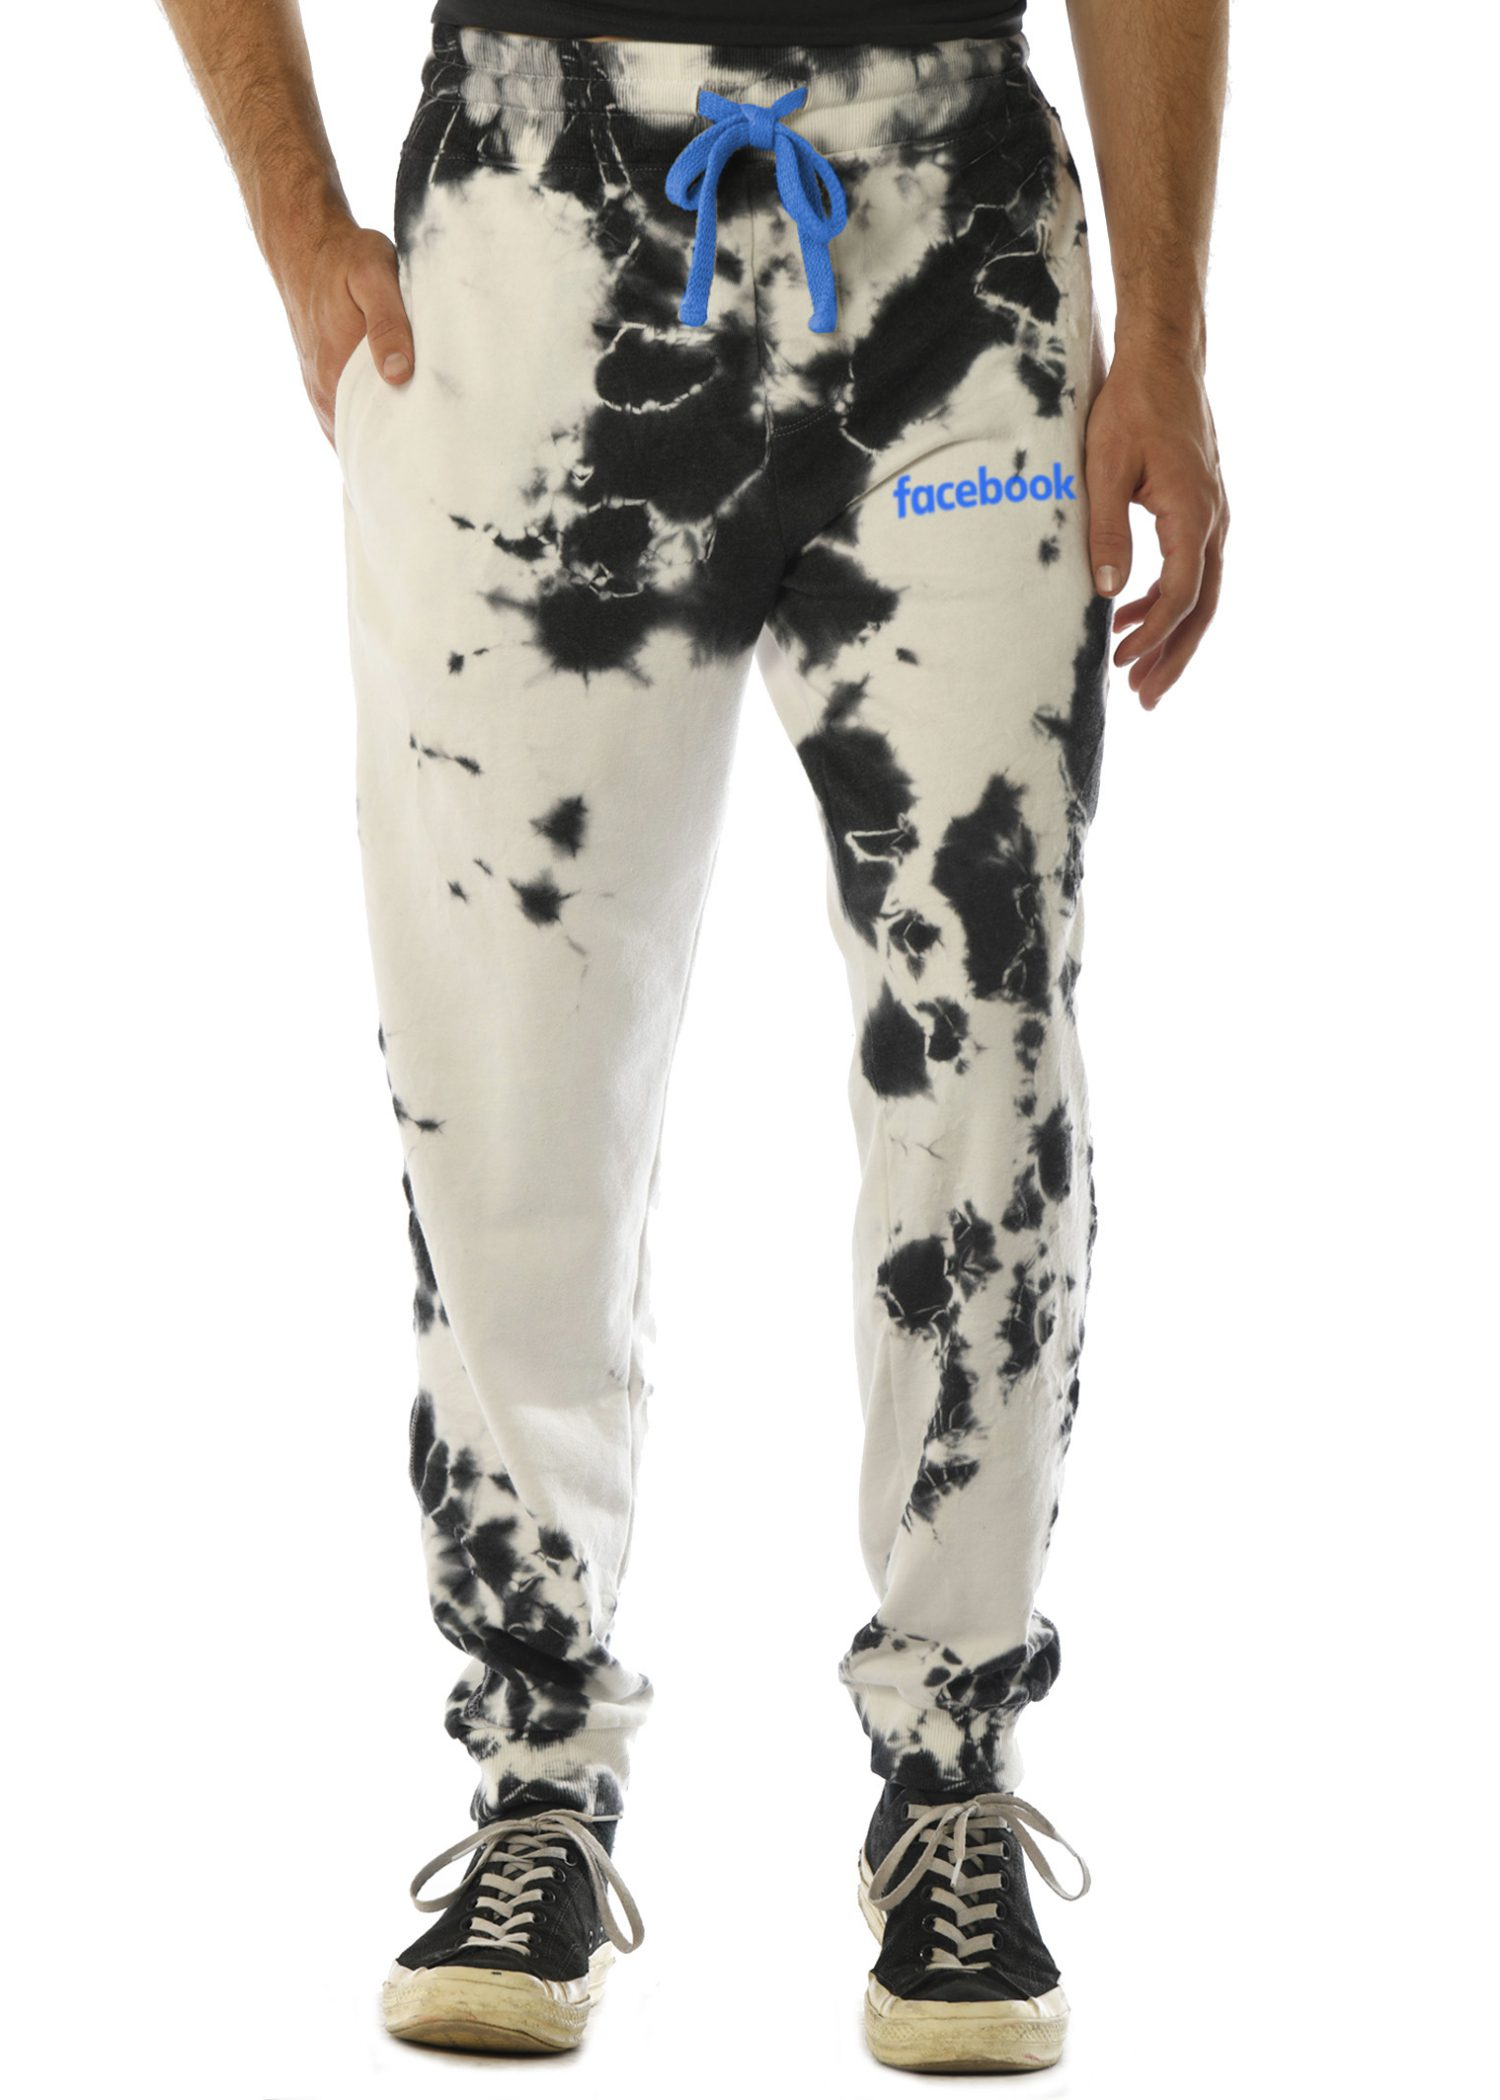 GG 312-P-CW L Men's CrystalwashJogger-Front 2 FACEBOOK copy